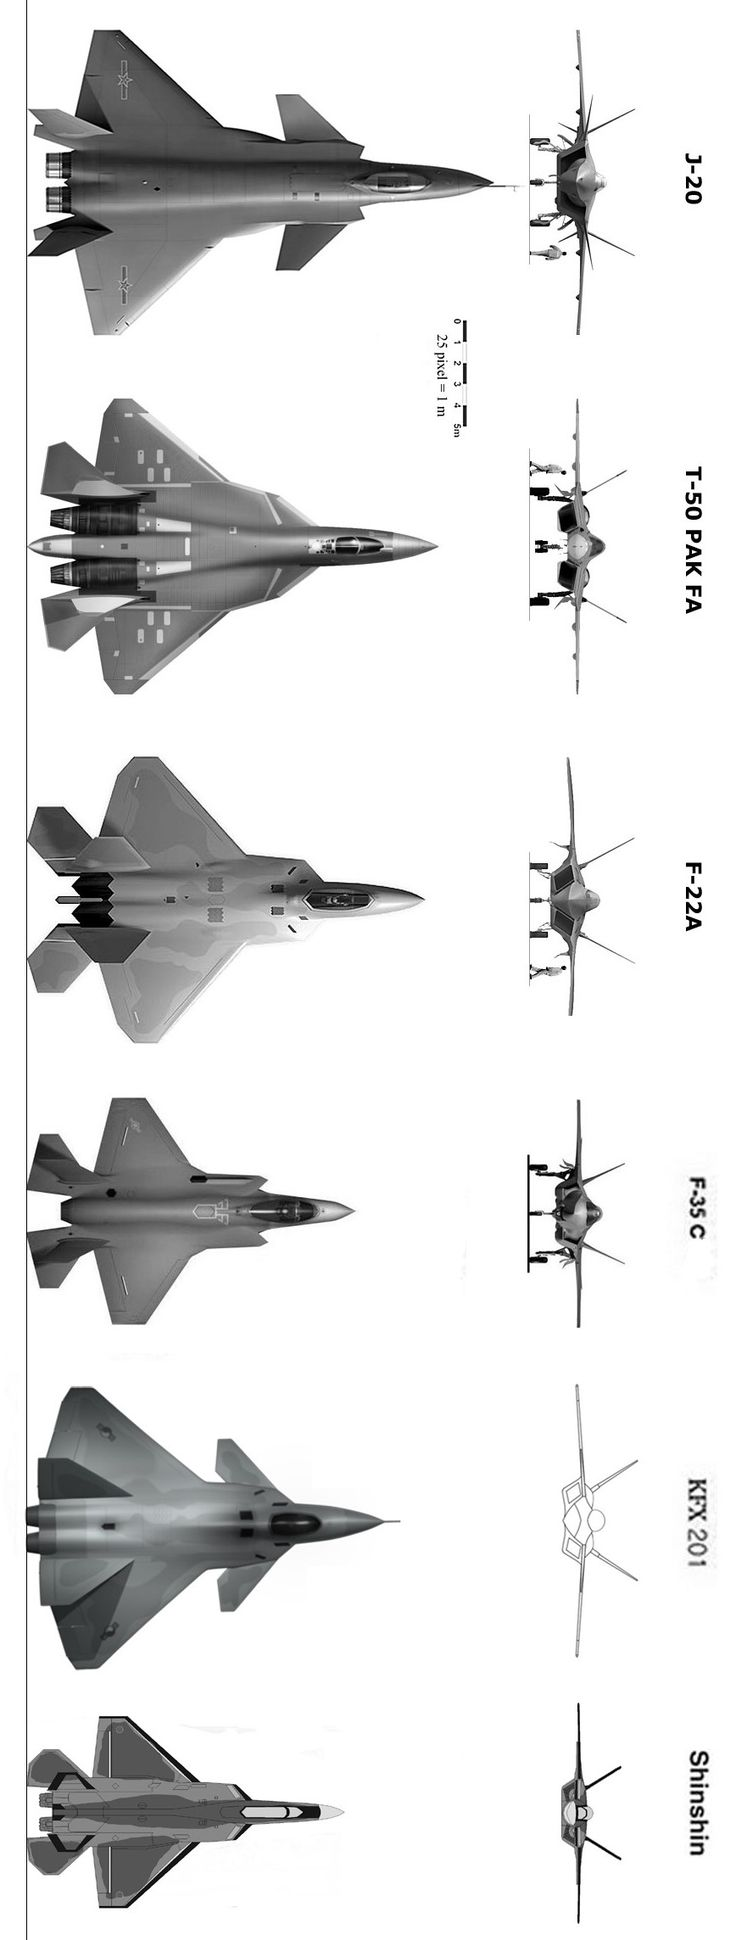 Chinese Stealth Tech- many think China borrowed fighter technology.  I also think it would be foolish not to use proven ideas.  Plus if your designs can be taken the only main advantages are strategy and training. This where the majors have the edge.